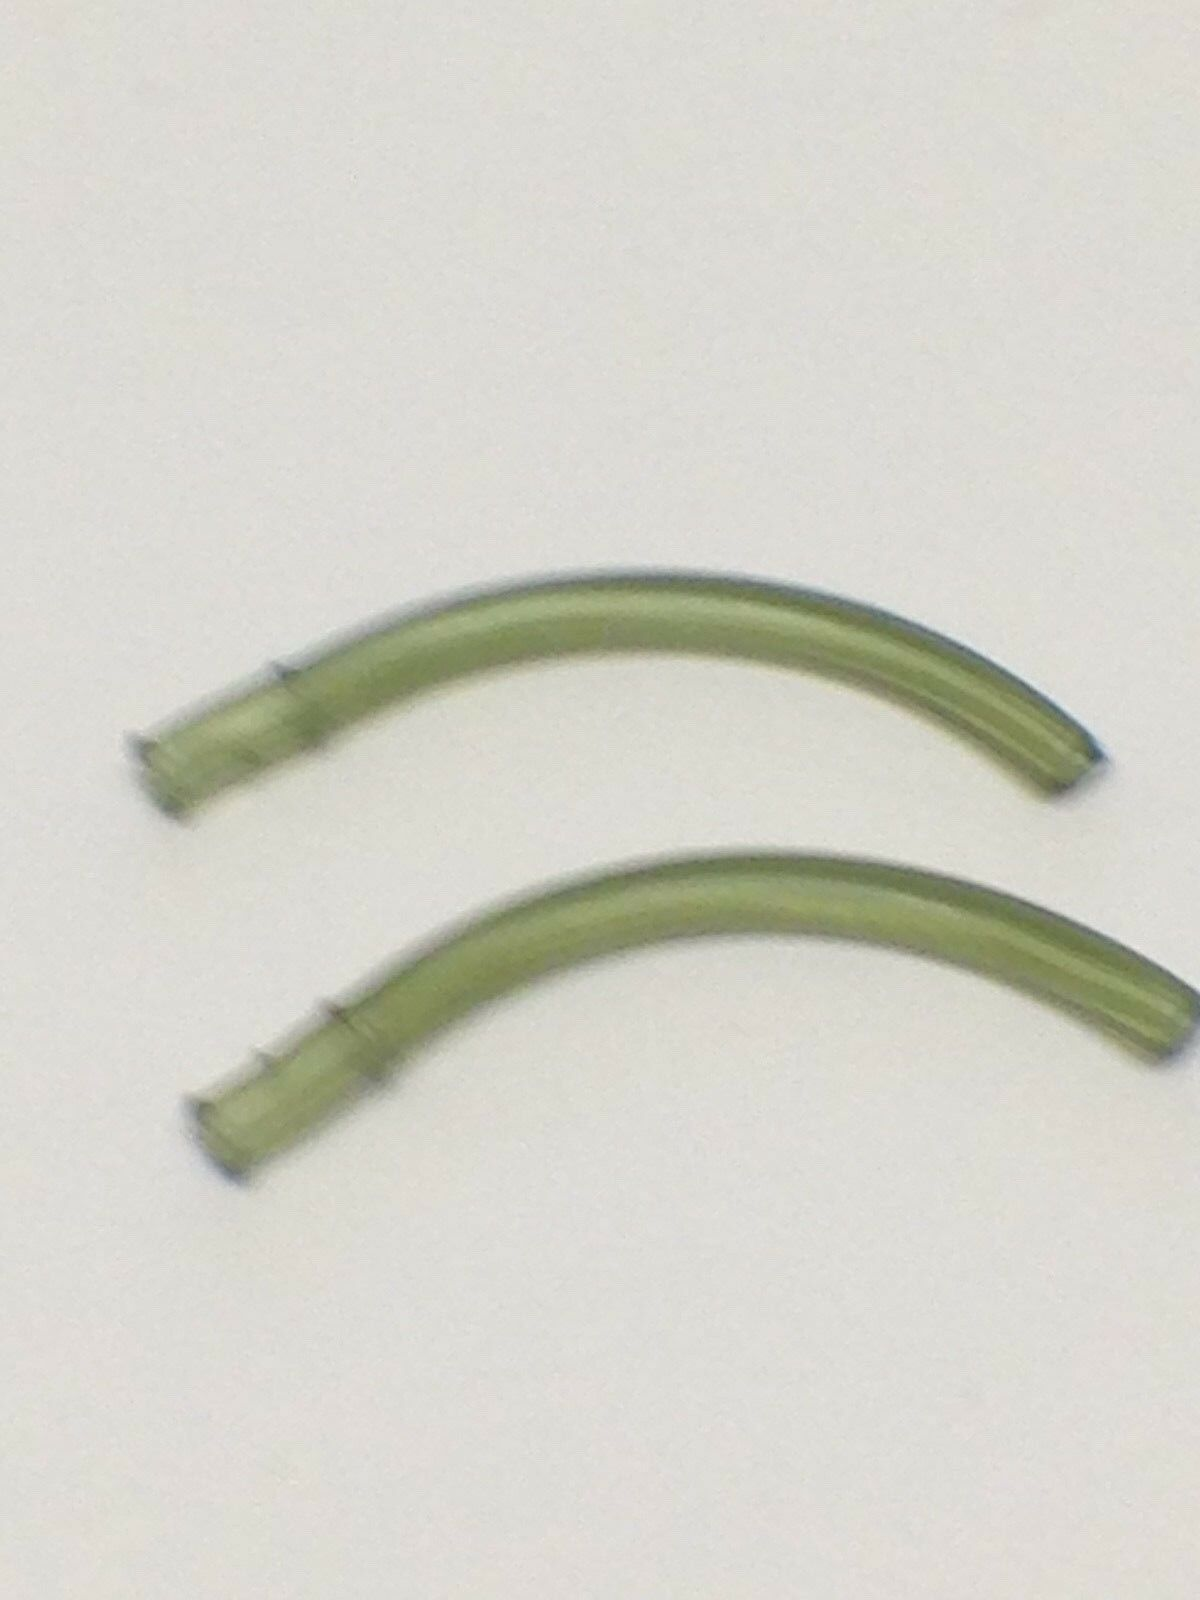 Course Fishing Hook Sleeves Translucent Green 50 x New Rig Aligners Carp